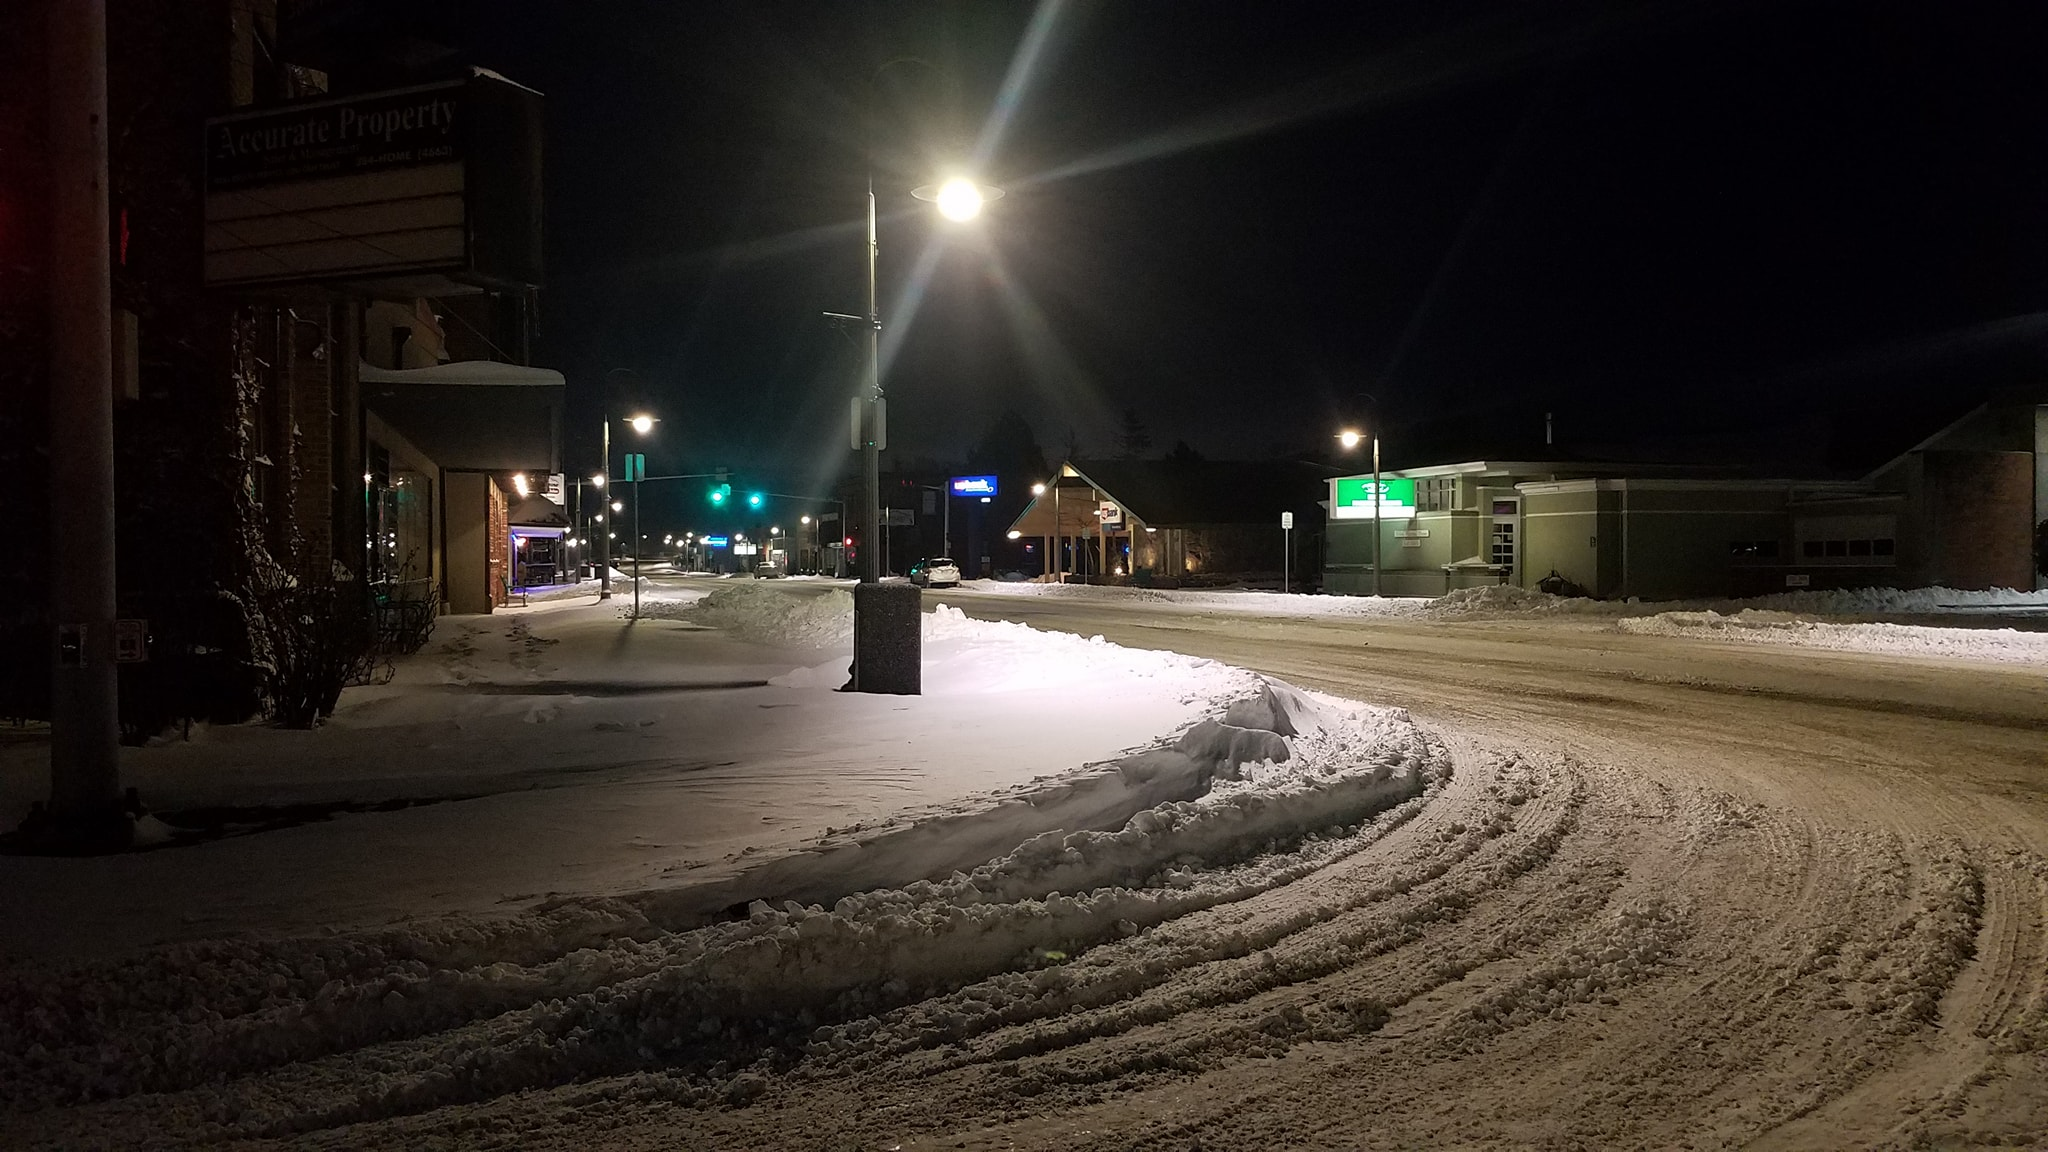 3rd and main after snowstorm 2019-02-11 photo tim probst